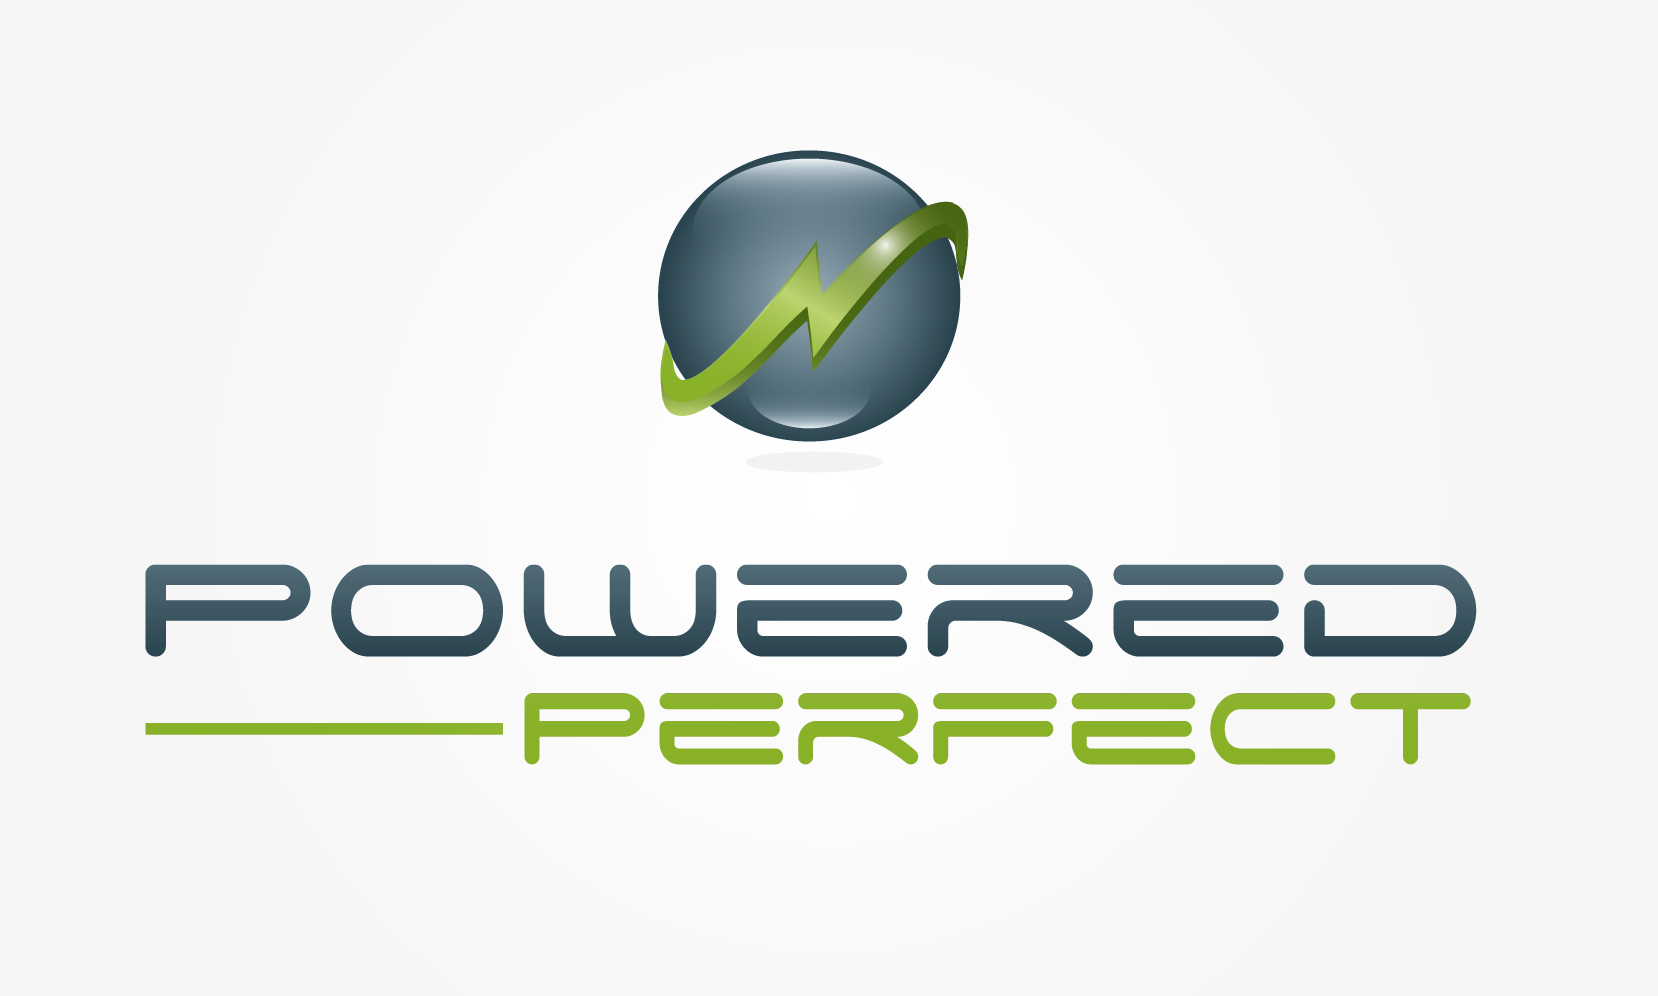 Logo Design by VENTSISLAV KOVACHEV - Entry No. 5 in the Logo Design Contest Captivating Logo Design for Powered Perfect.